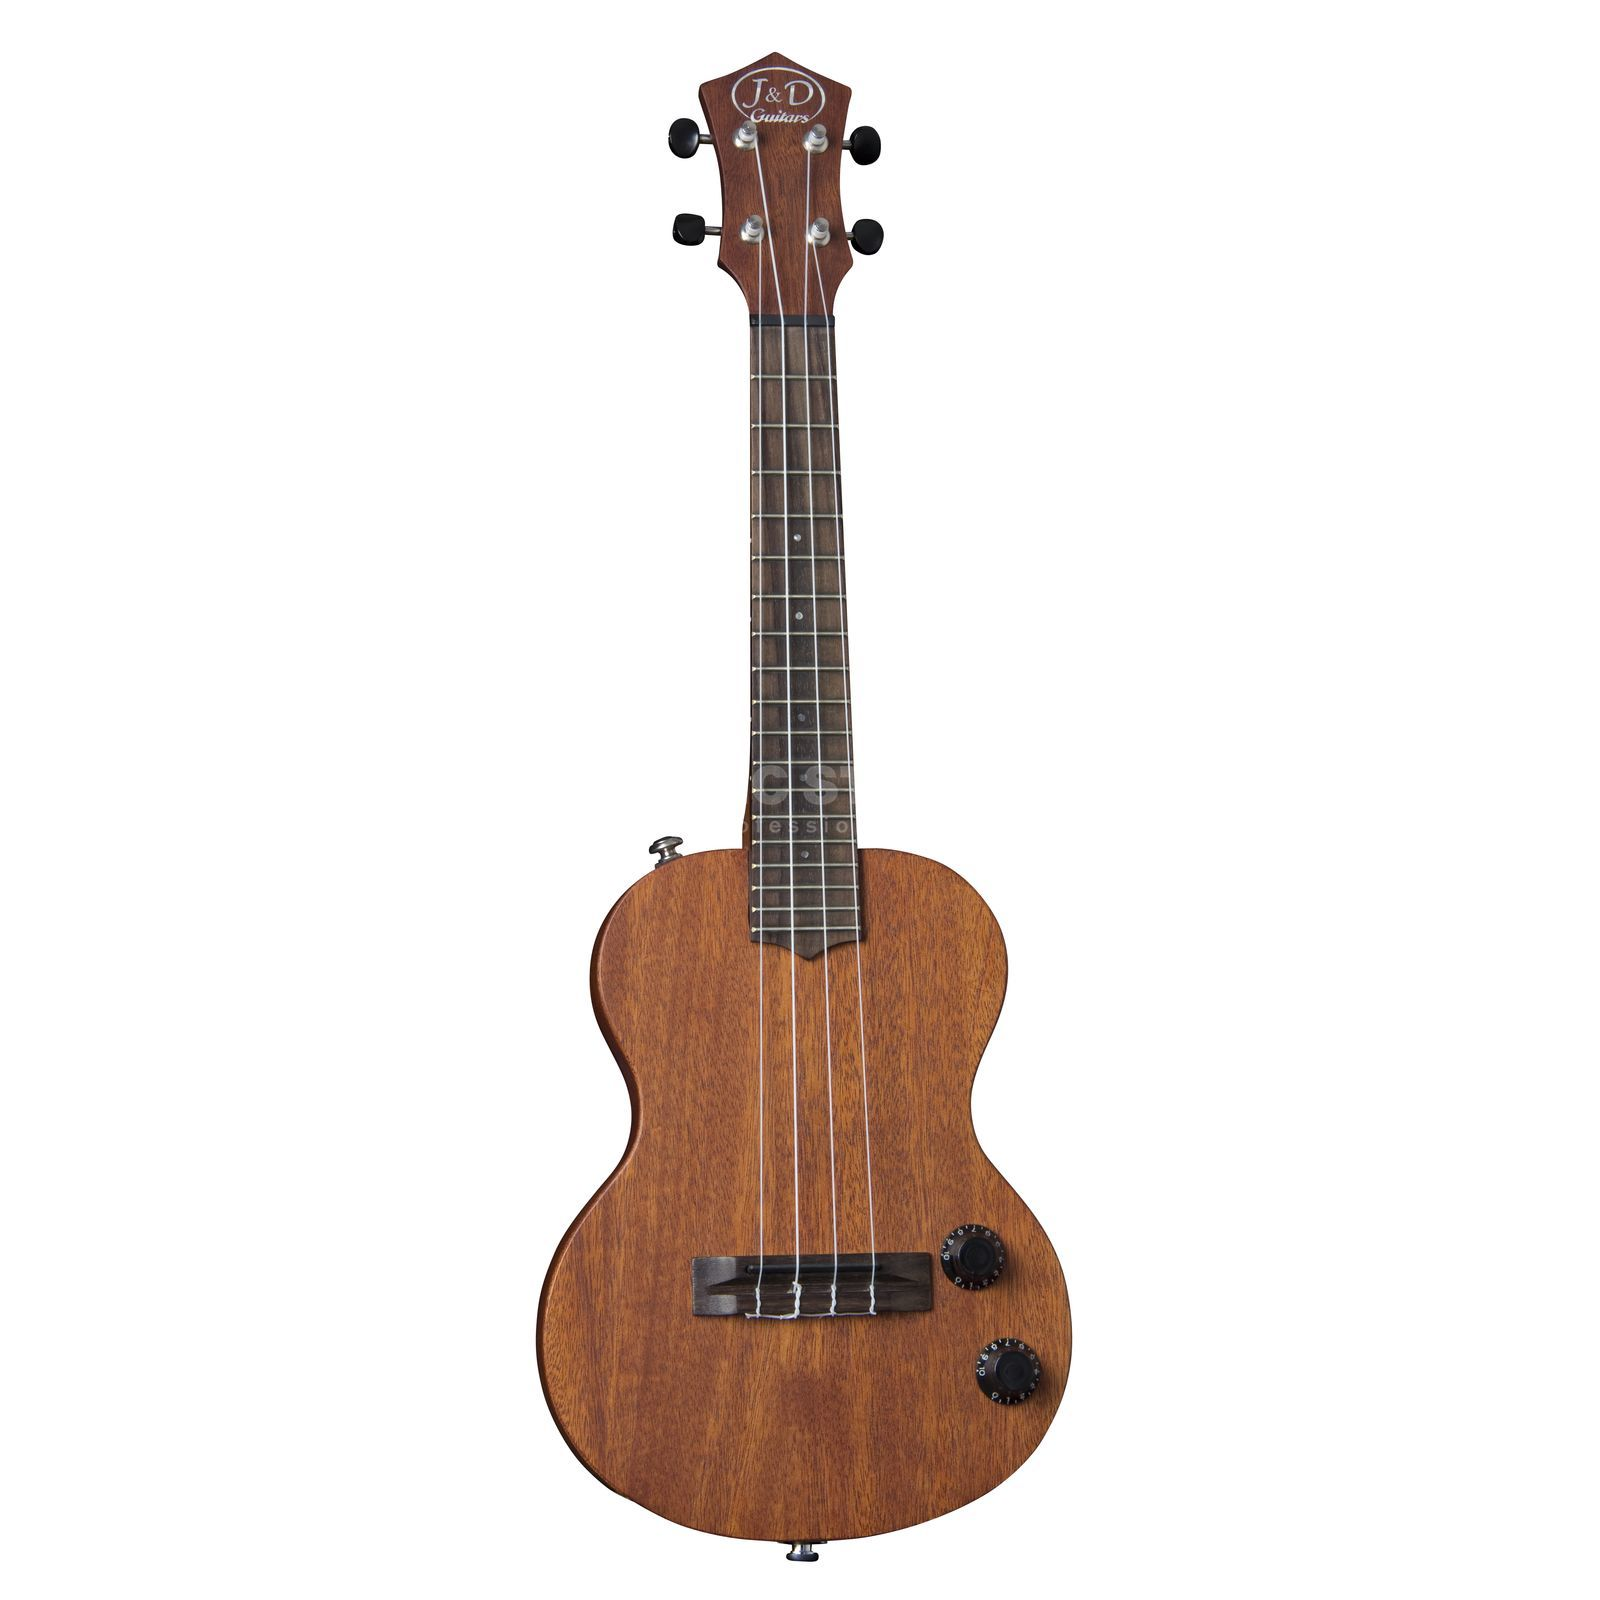 Jack & Danny Electric Solid Body Ukulele Mahogany, Natural Product Image